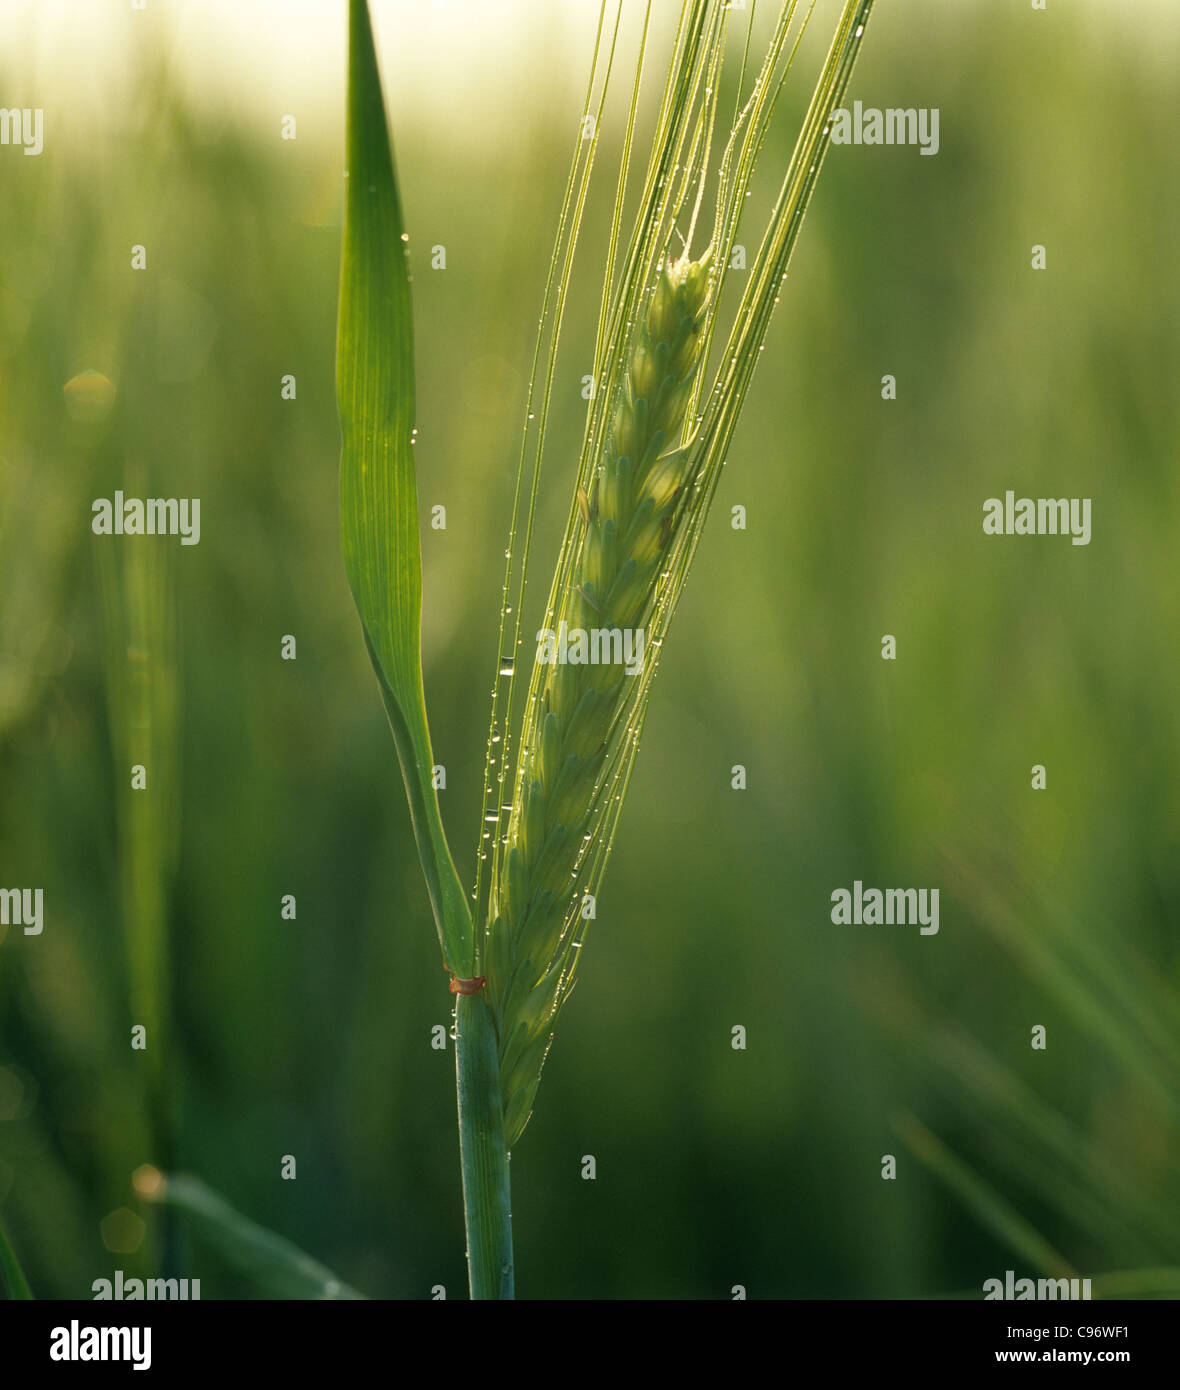 Early morning backlit young barley ear with dew droplets - Stock Image